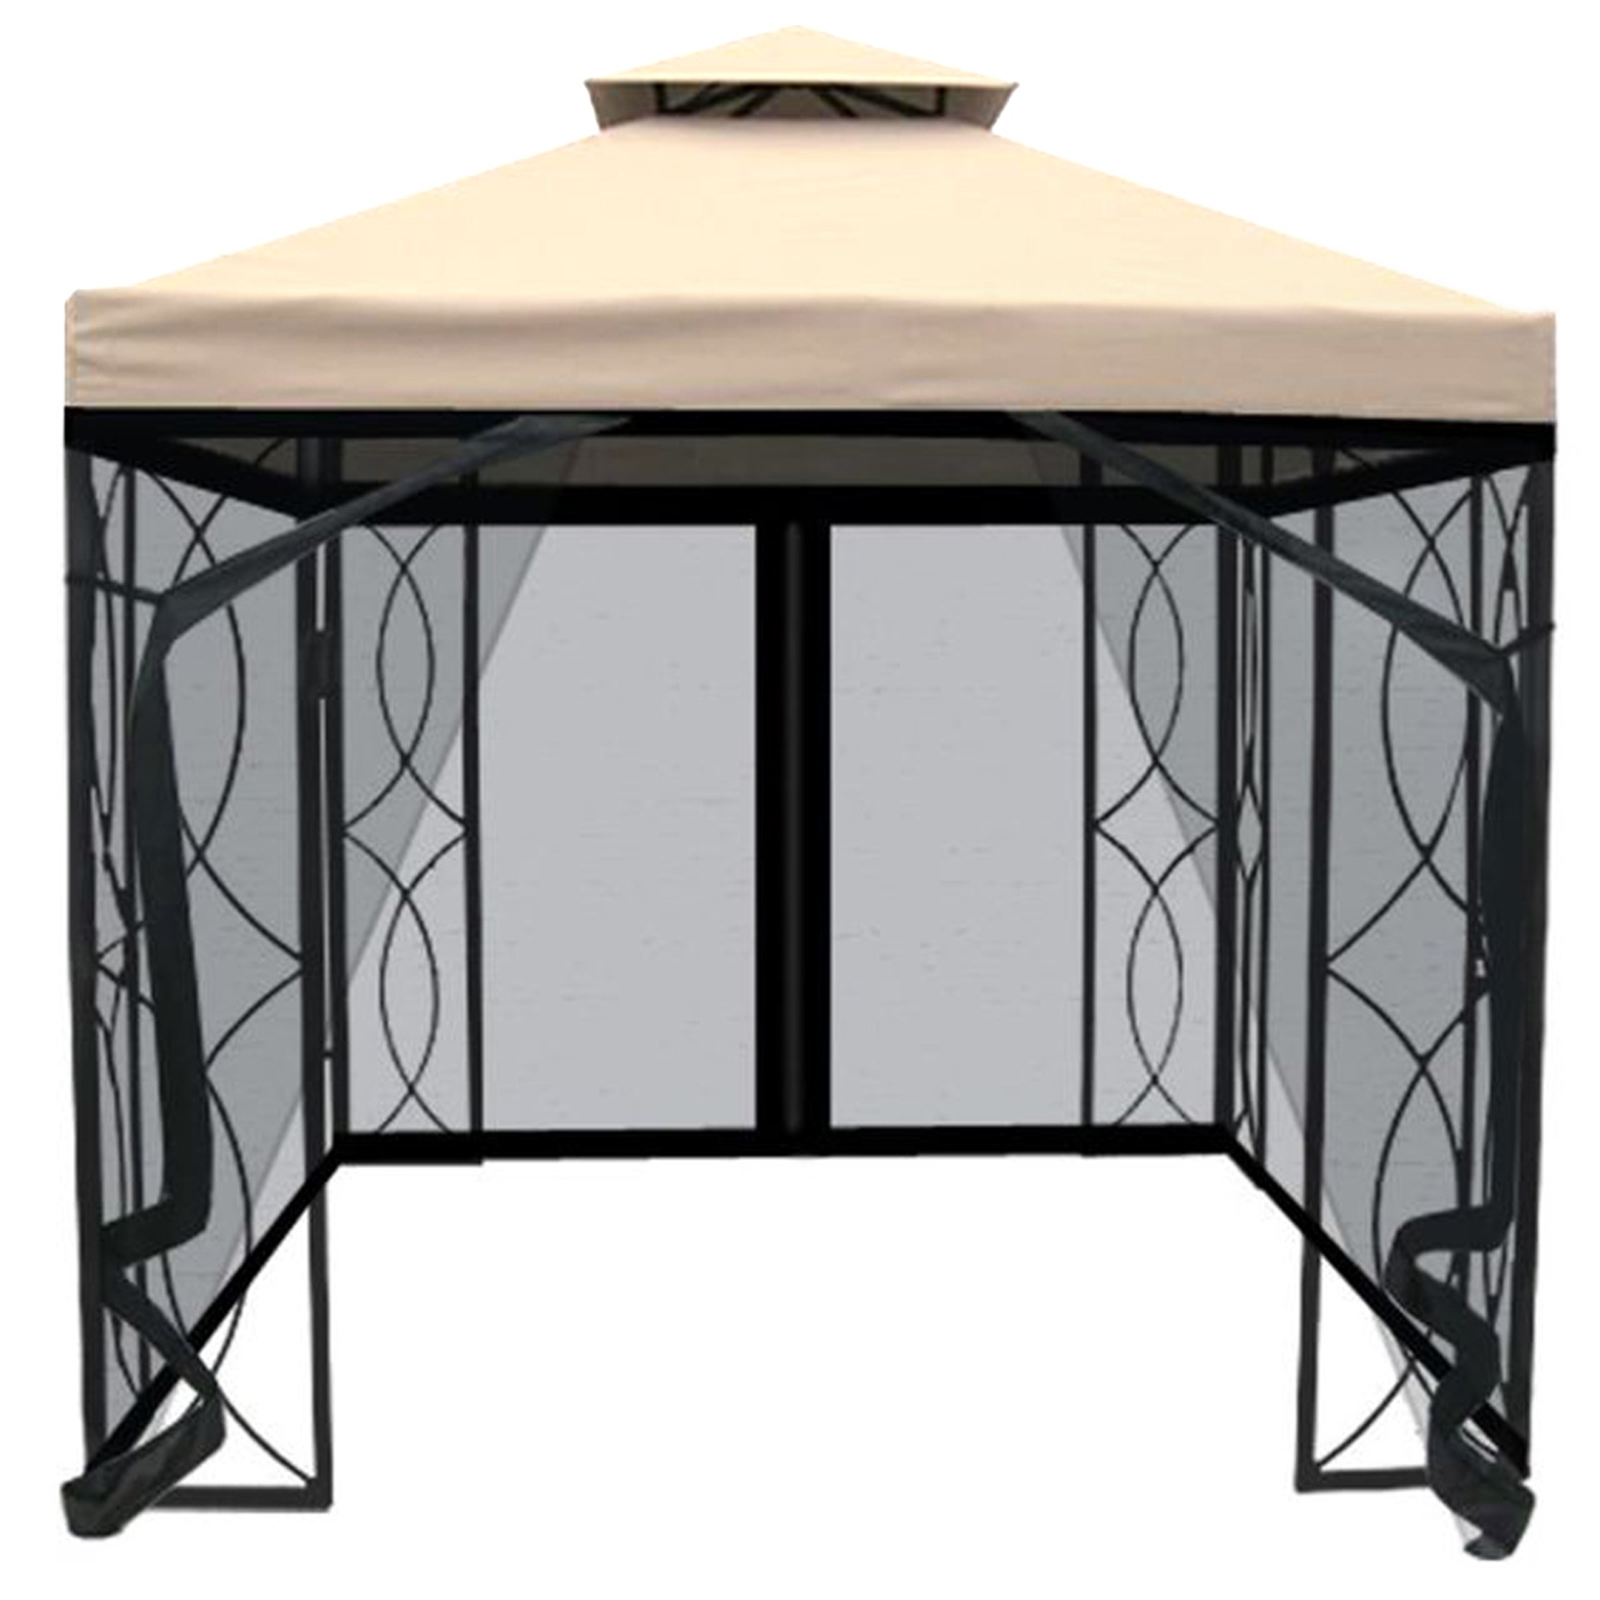 £190 at Homebase buys you this lovely gazebo. Credit: Homebase